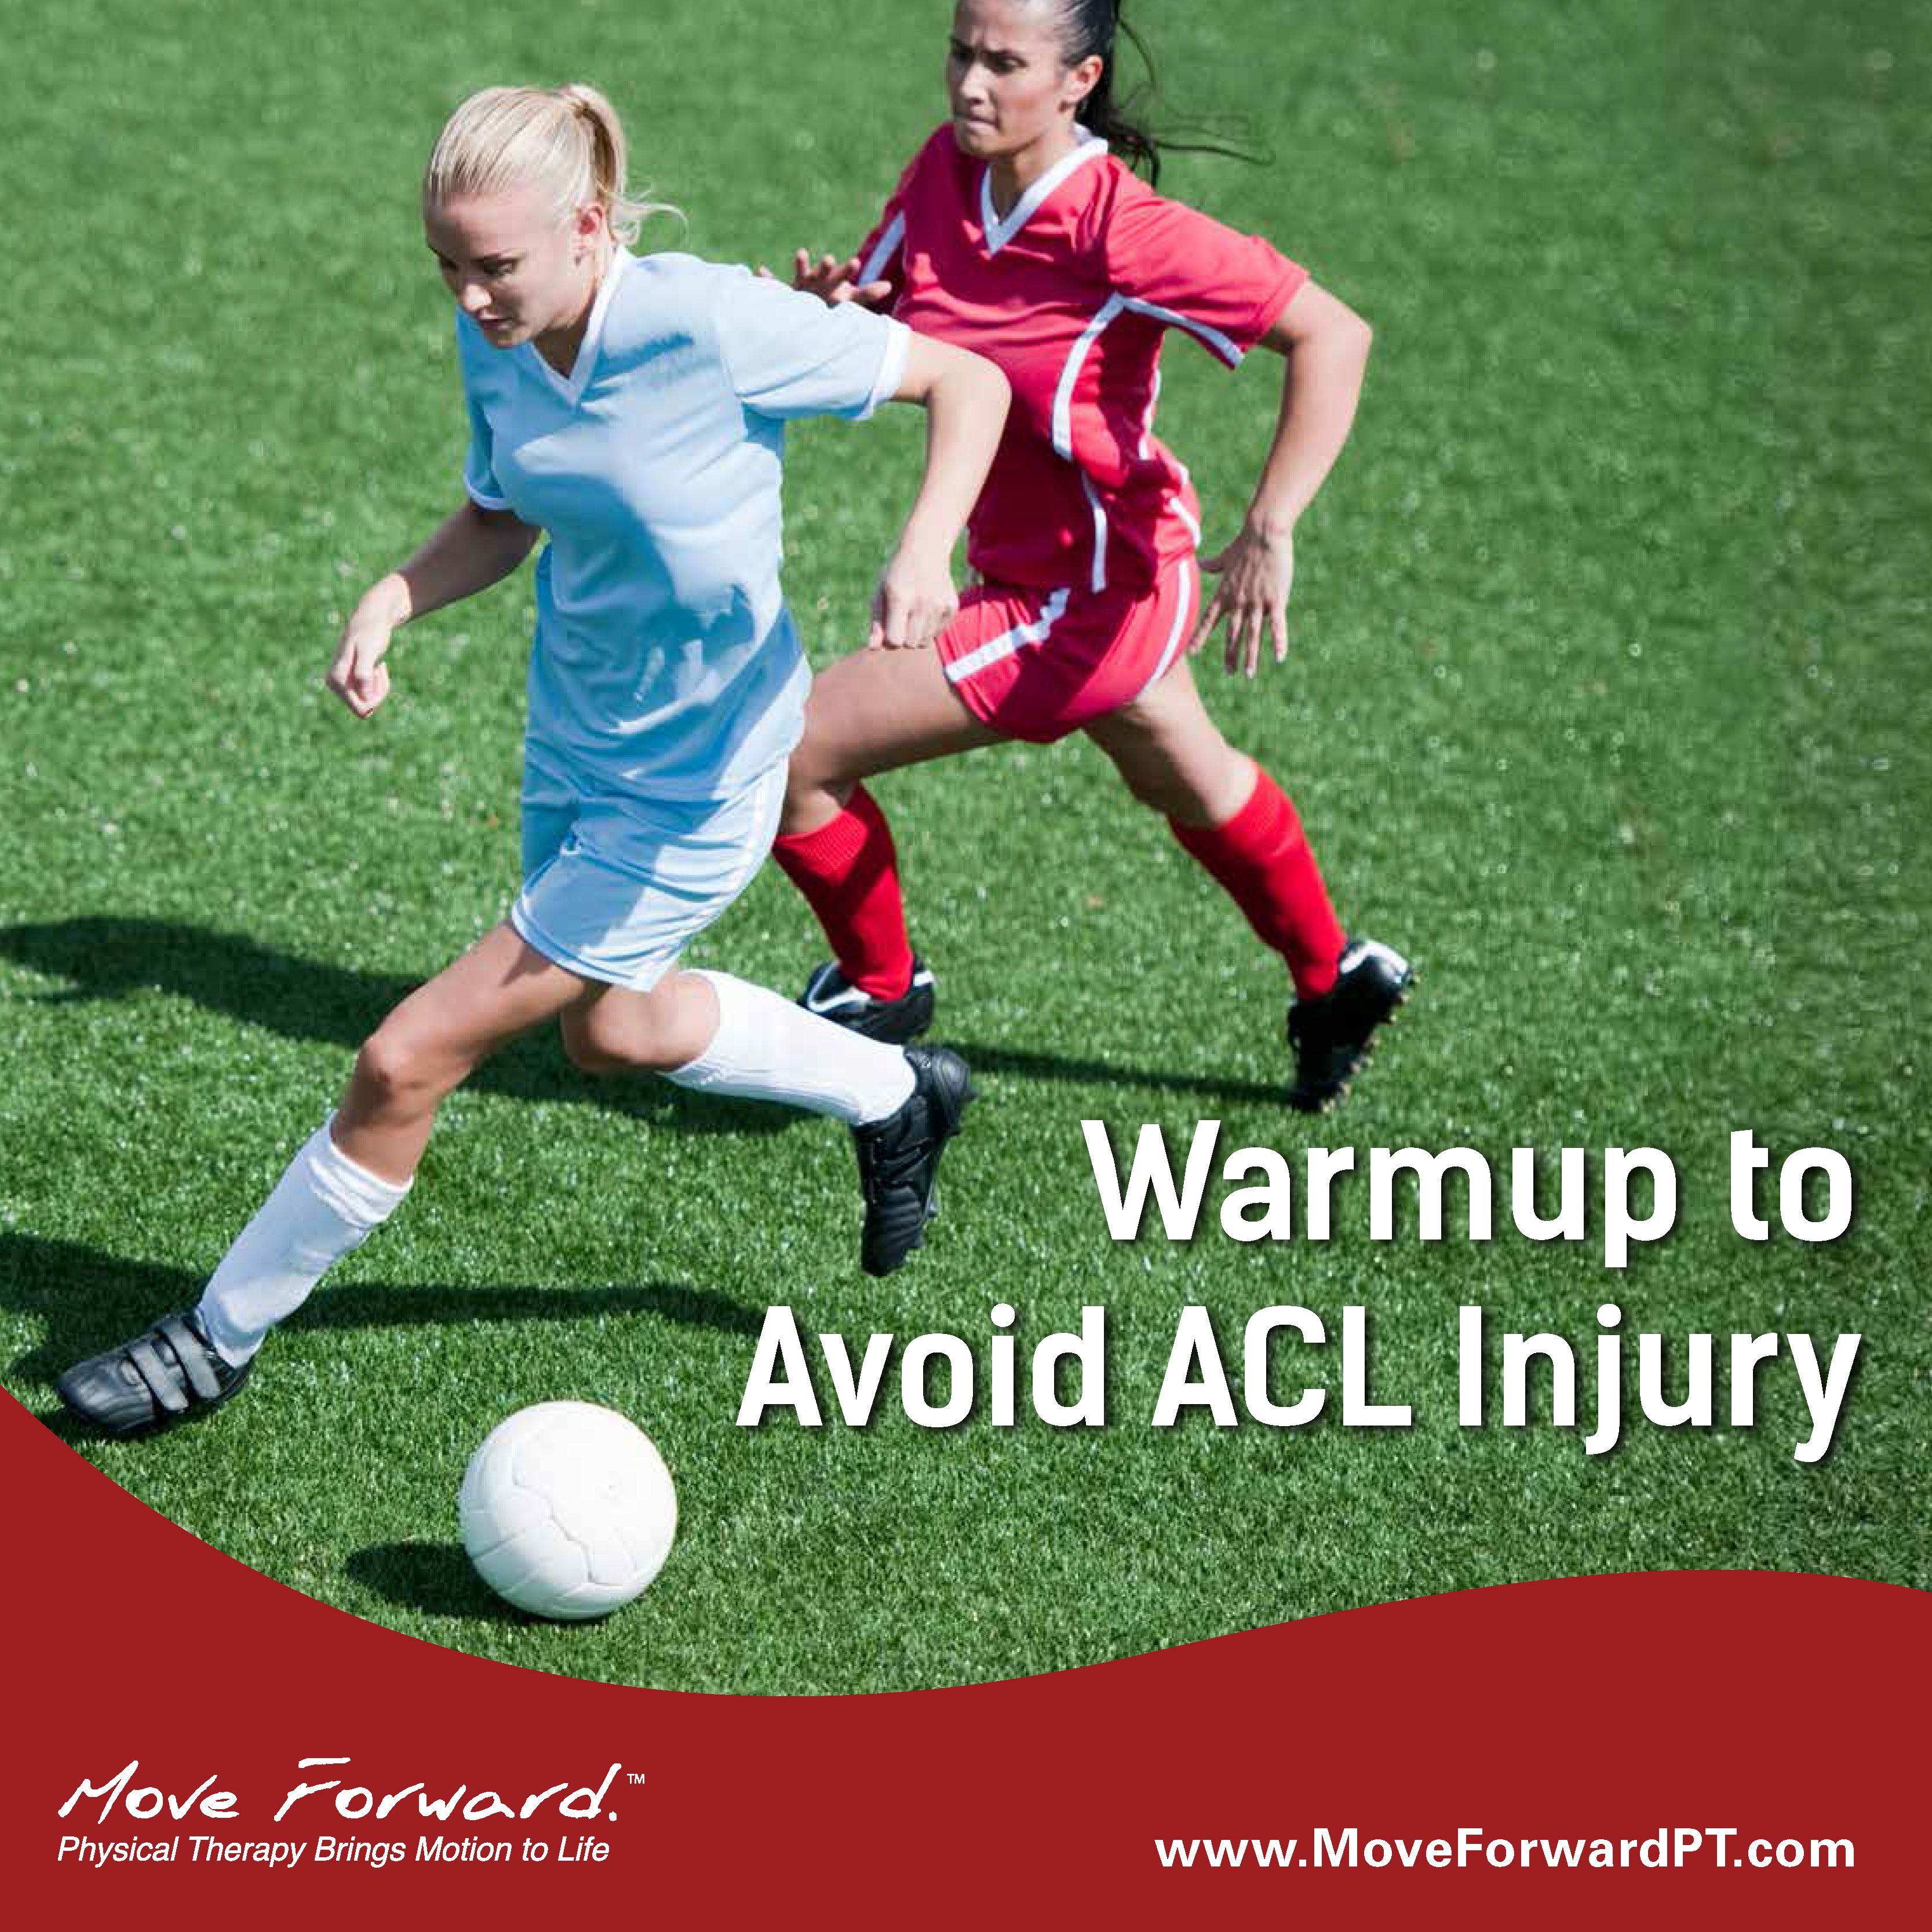 Warmup Exercises Reduce Acl Injuries Workout Warm Up Injury Prevention Injury